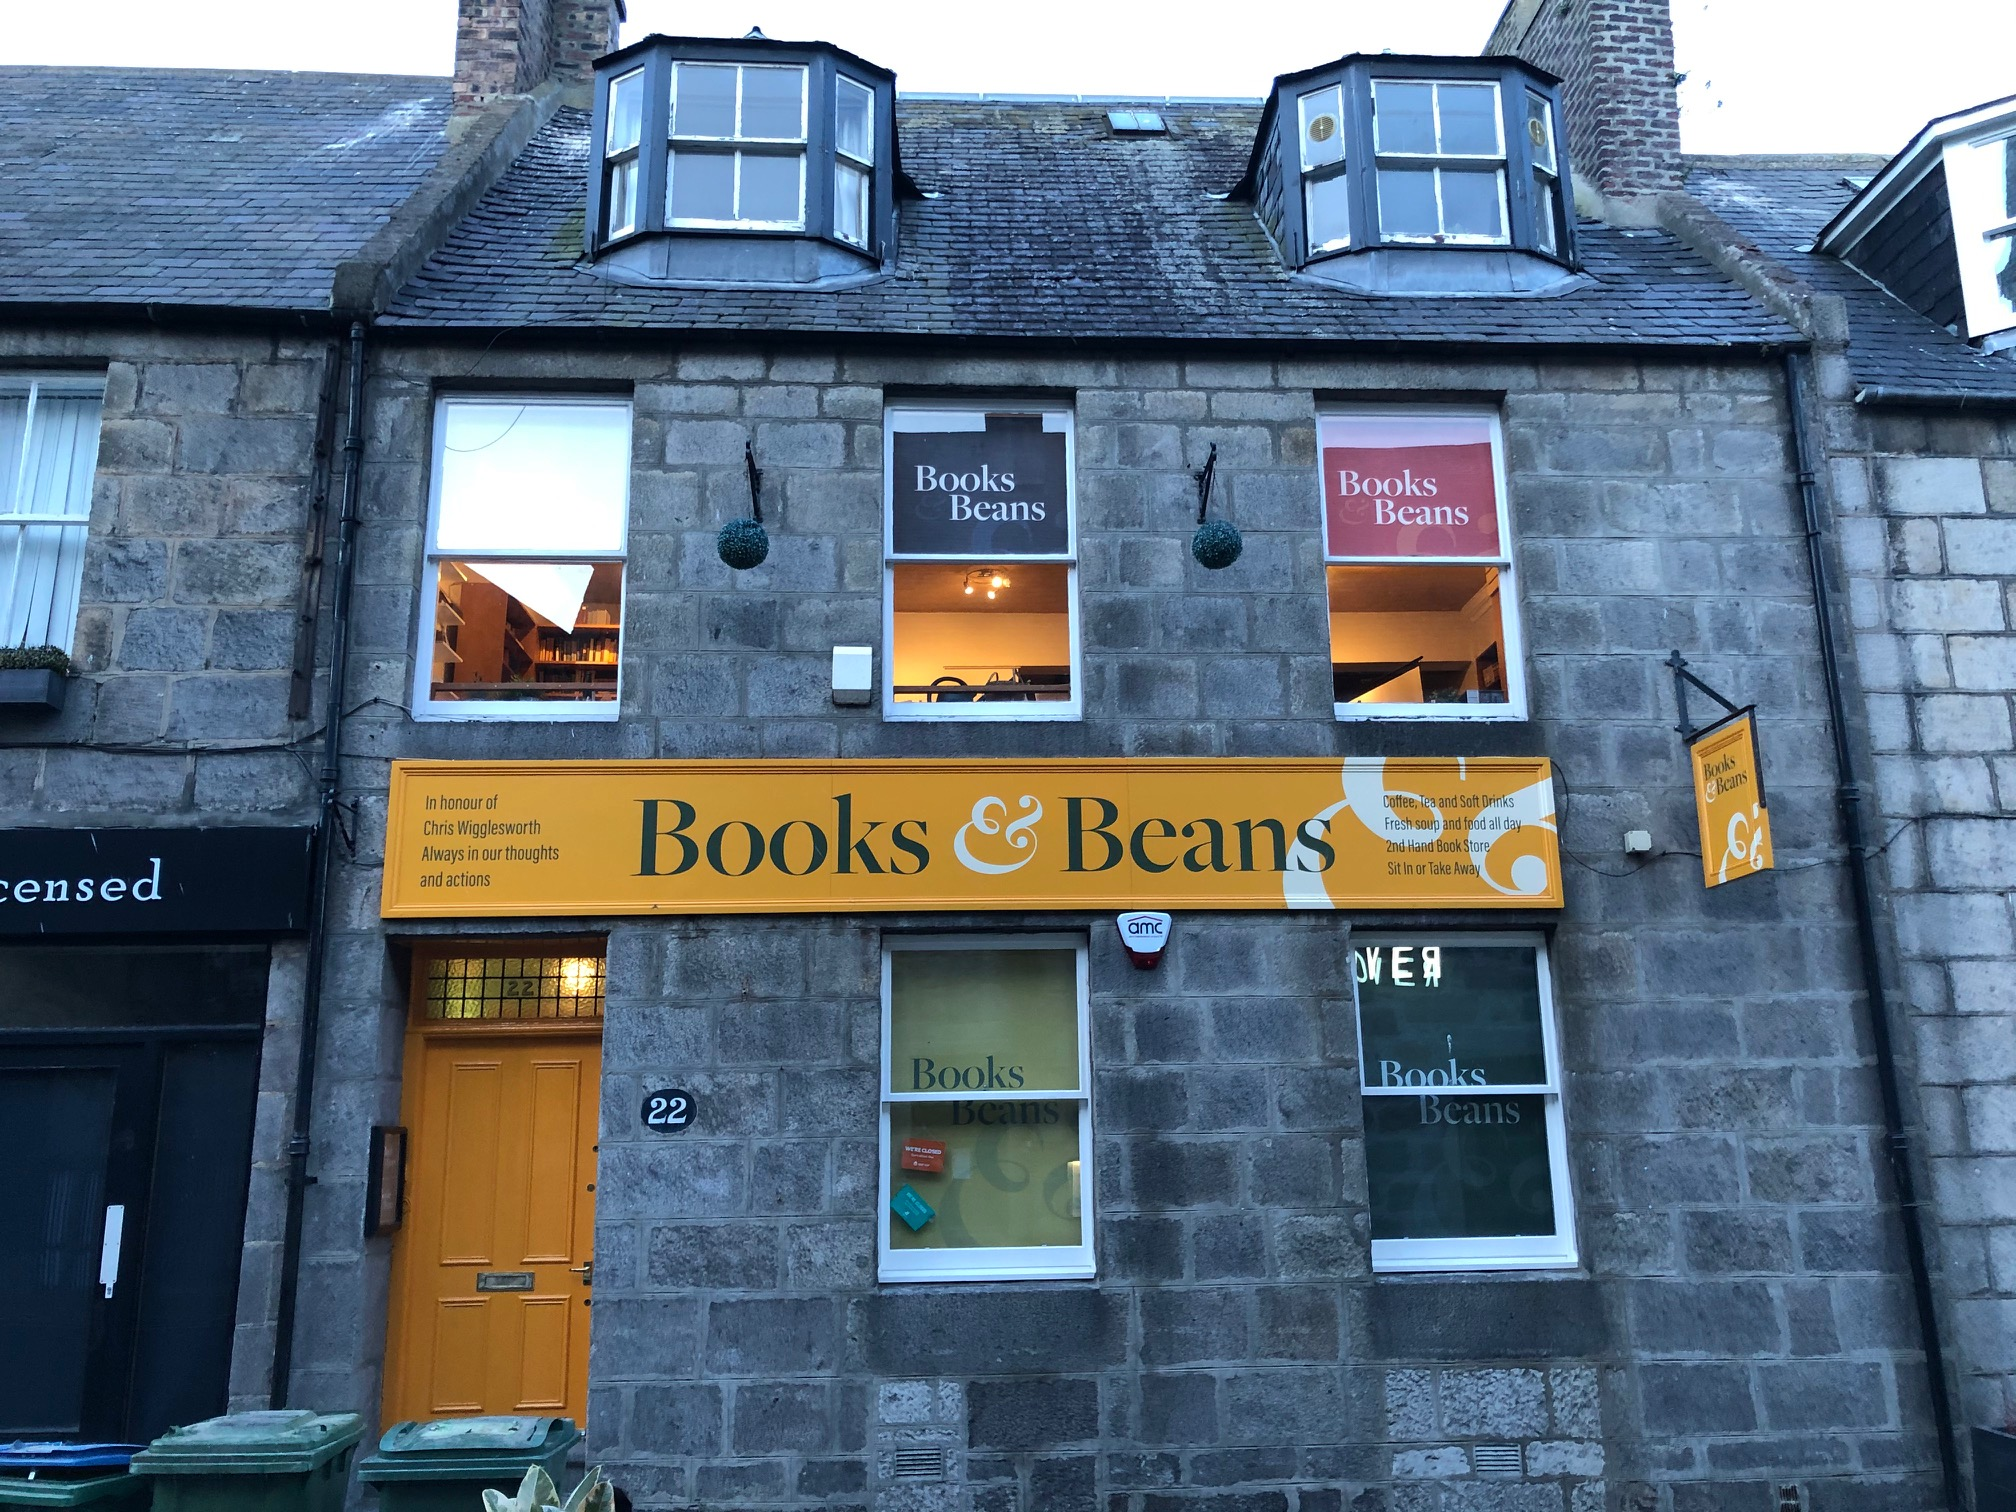 A picture of the front building of the Books & Beans coffee shop